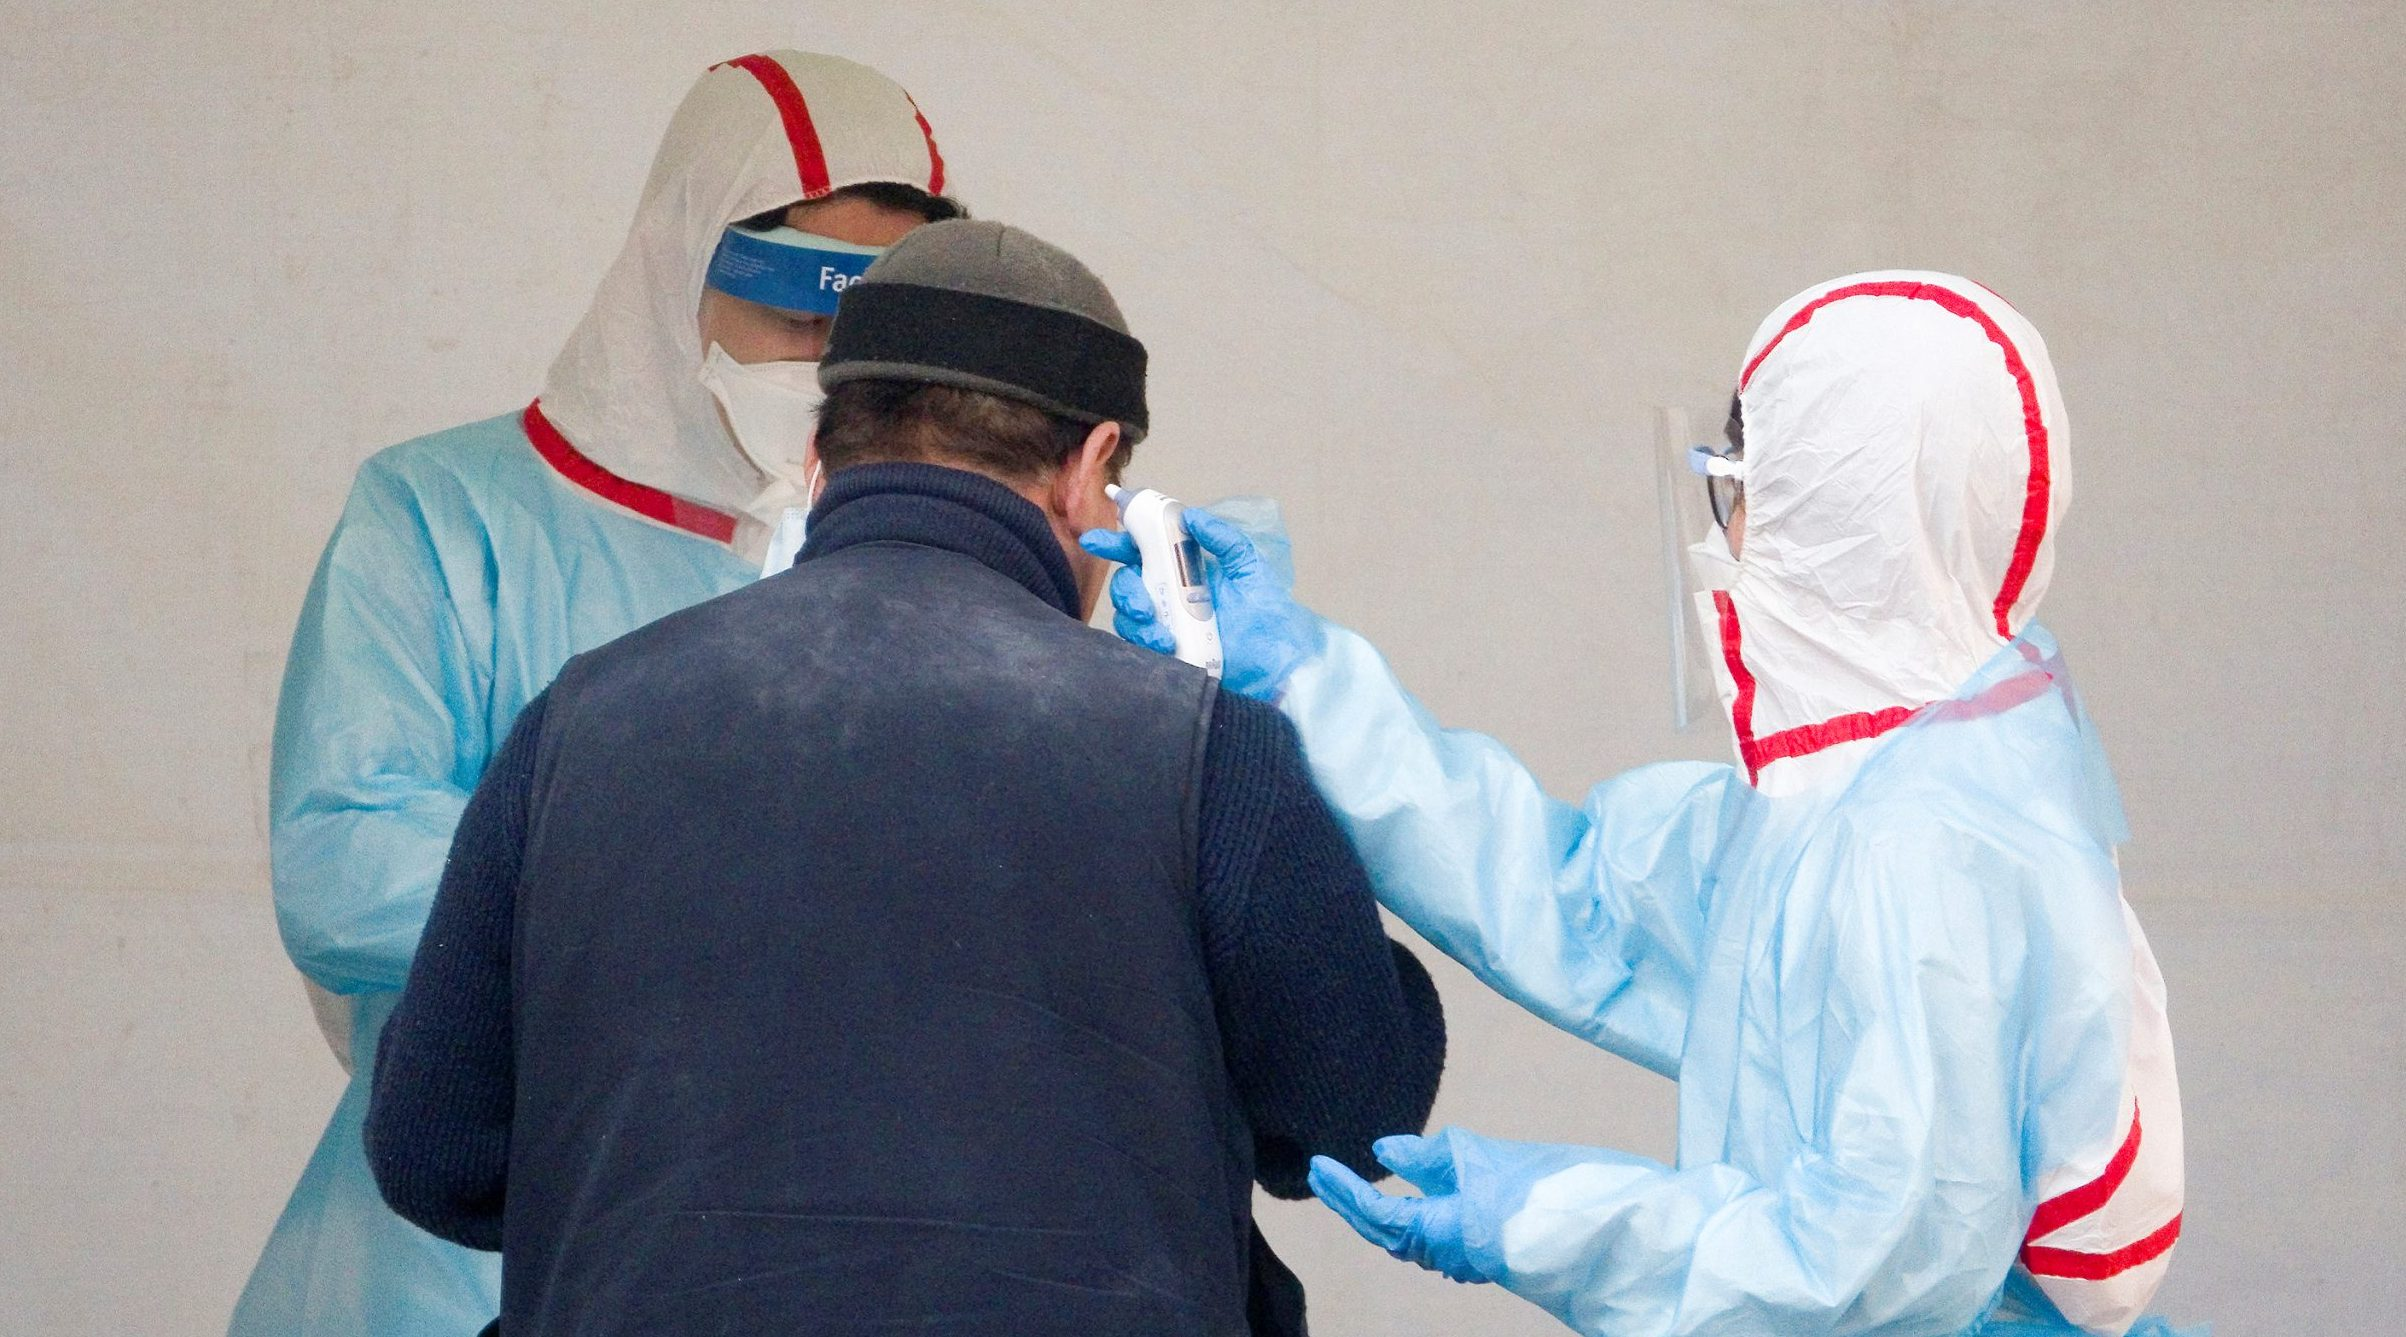 Two elderly UK residents have already died from coronavirus